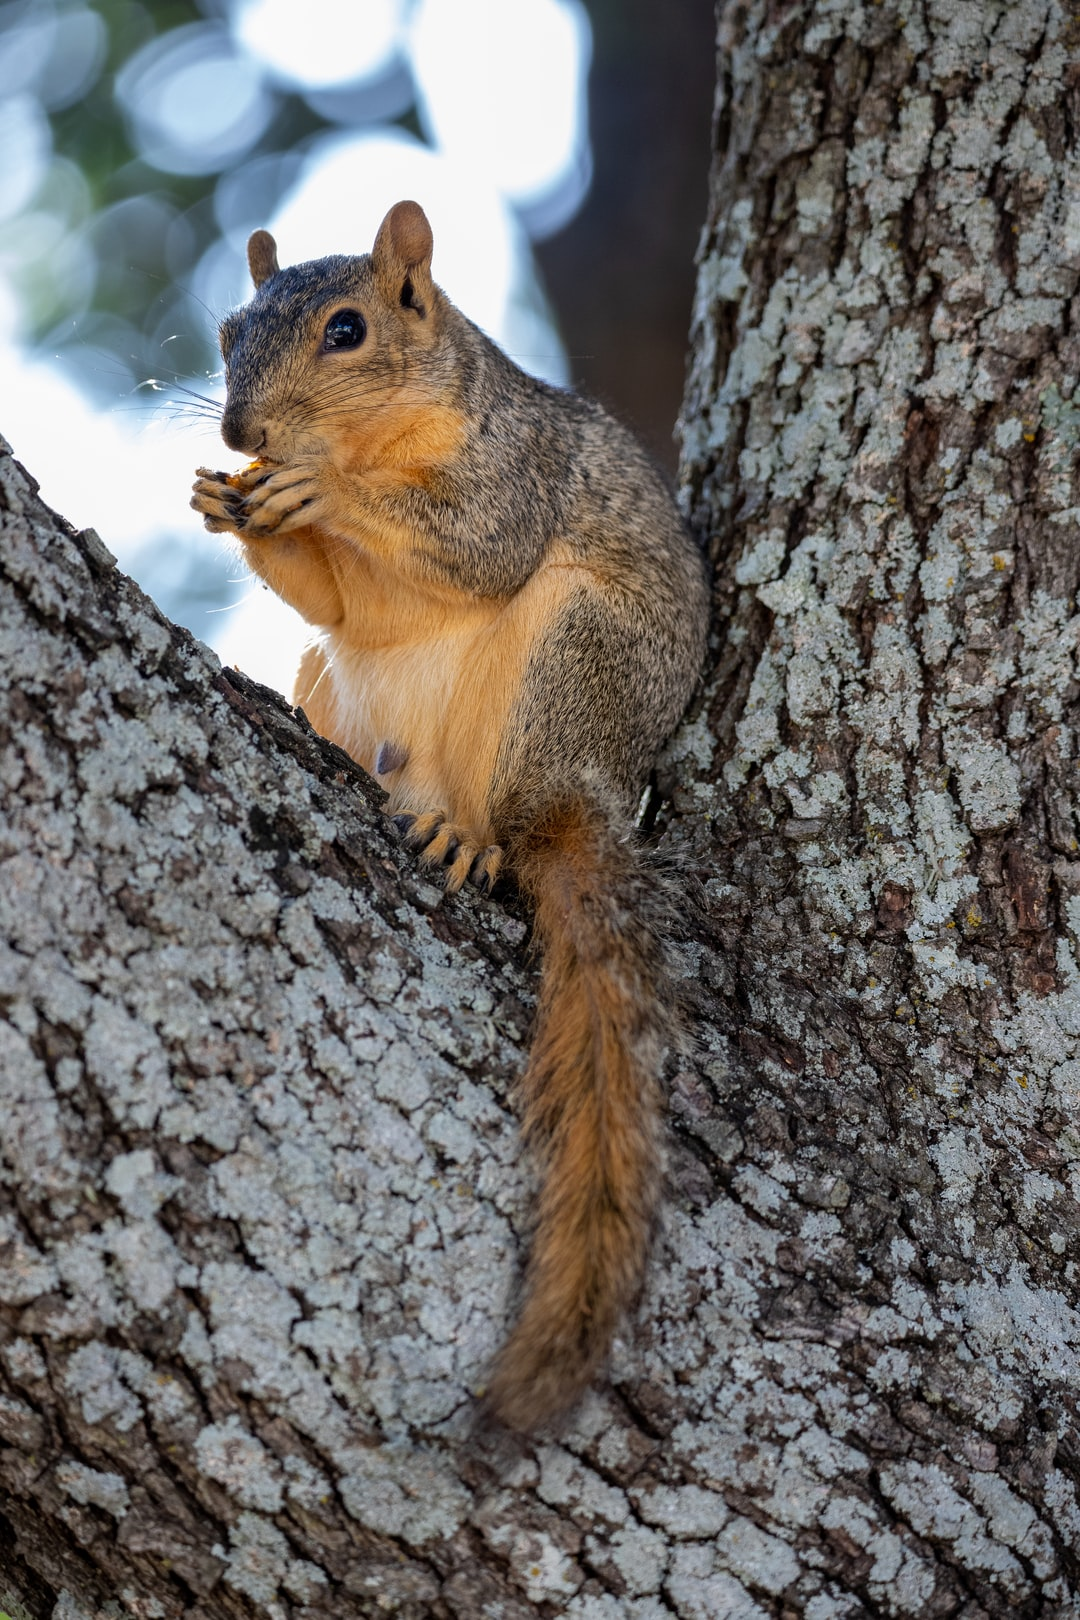 Squirrel eating a walnut while sitting in a tree